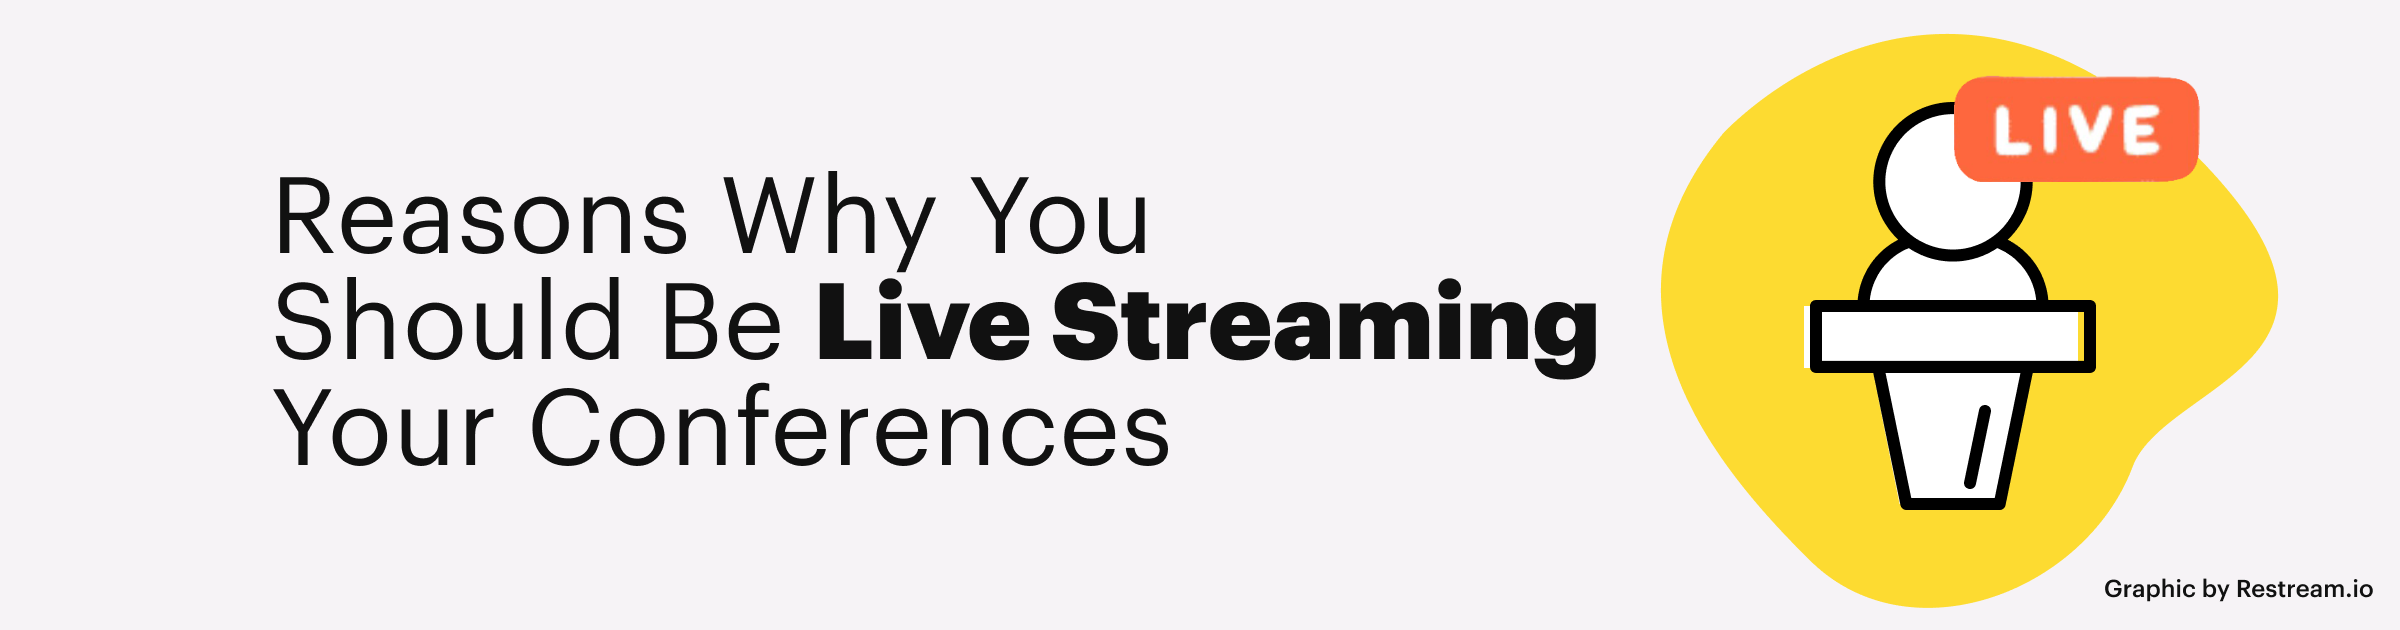 Reasons Why You Should Be Live Streaming Your Conferences